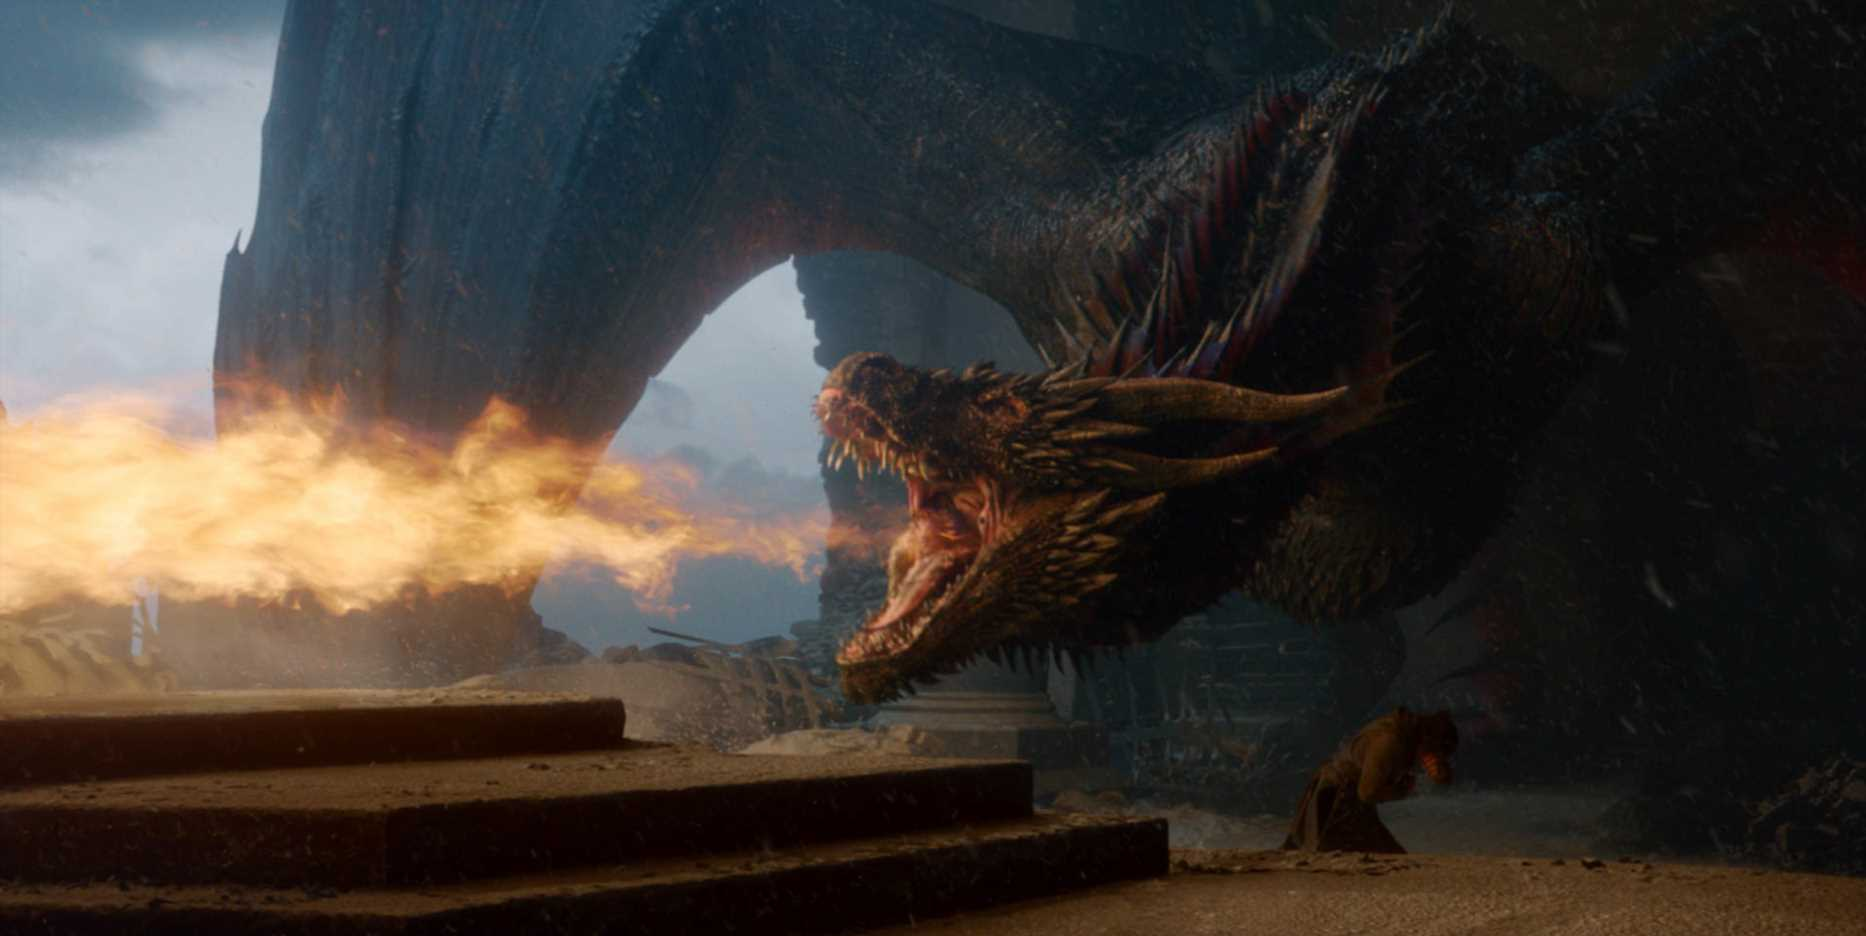 The Game of Thrones Finale Script Reveals Why Drogon Burned the Iron Throne Down